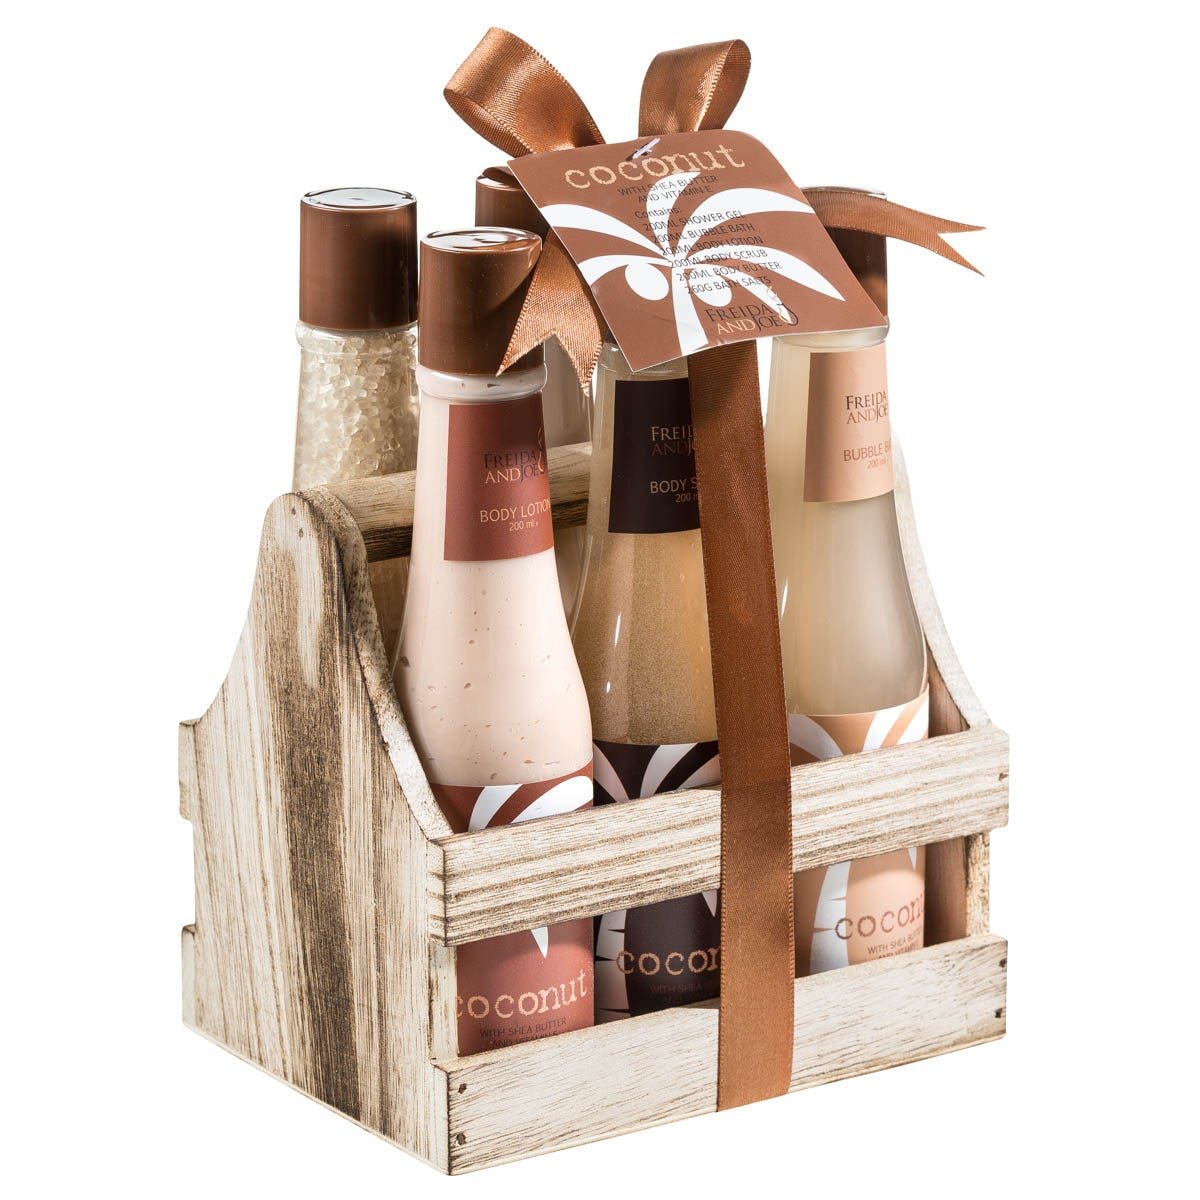 Tropical Milky Coconut Bath and Body 6-piece Spa Gift Set...